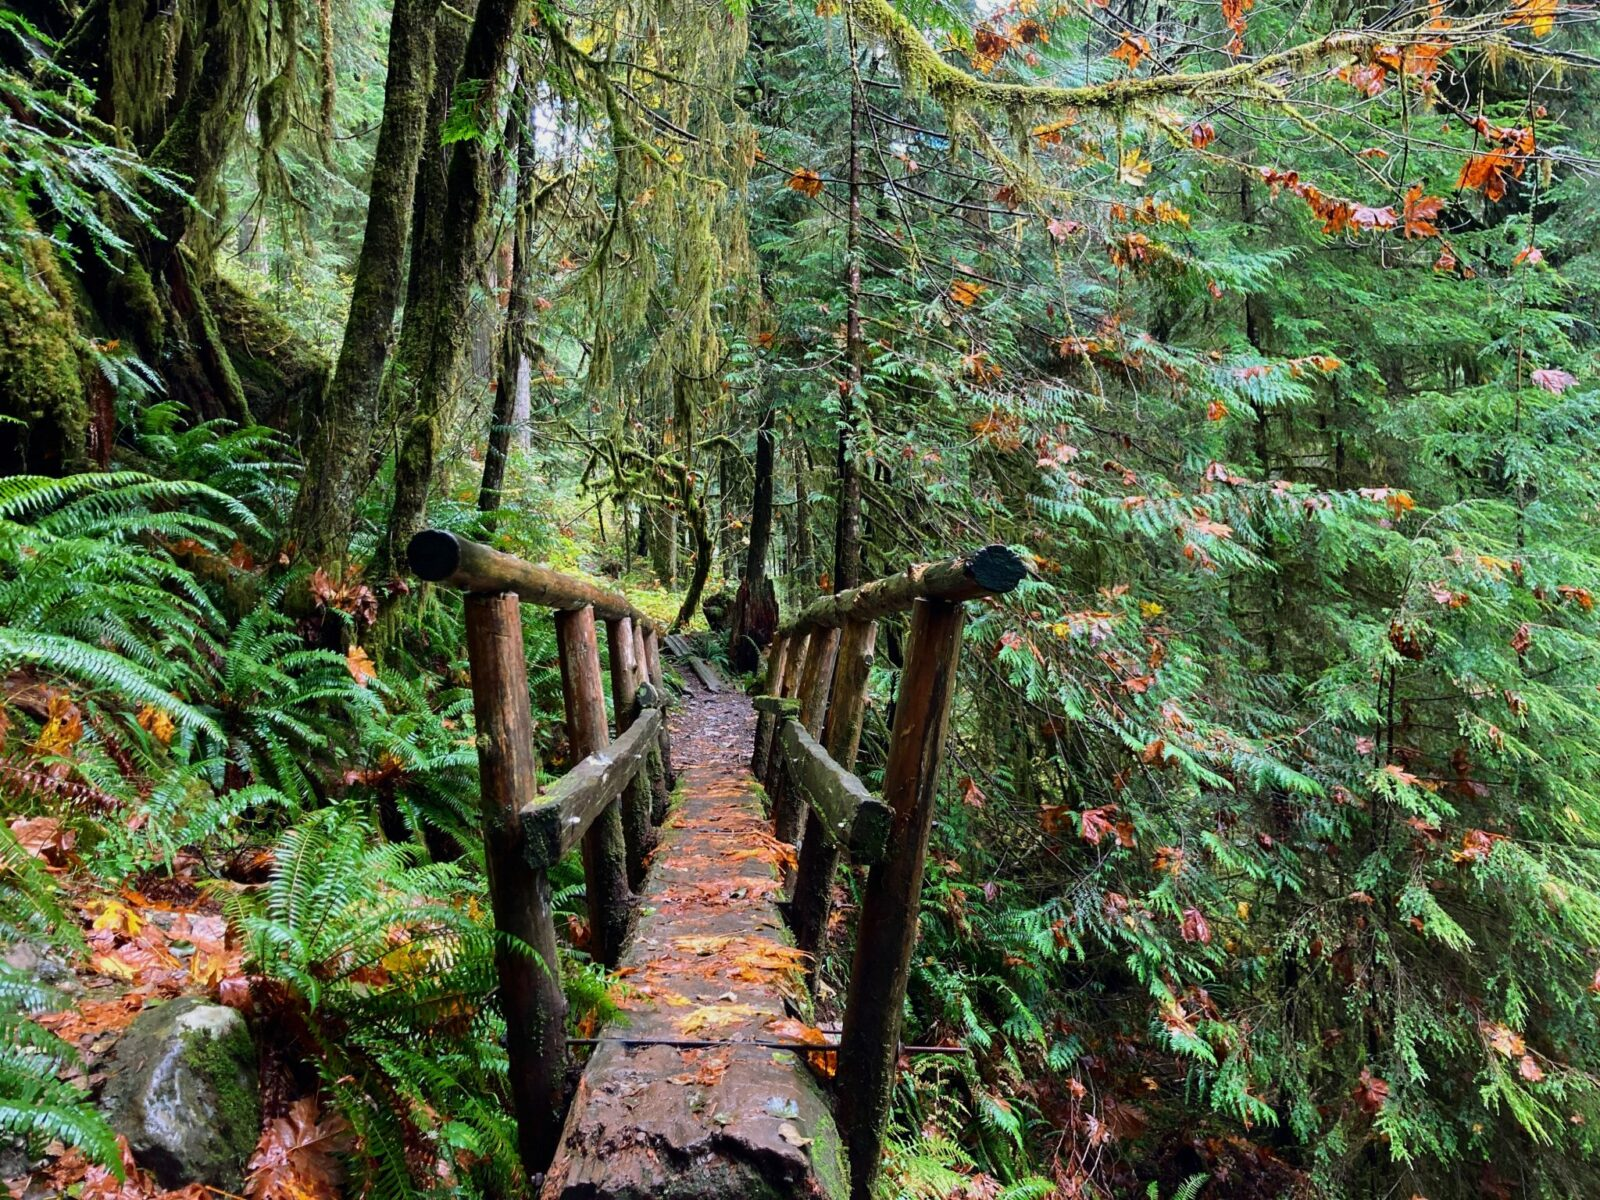 A single log bridge with wooden railings on each side. The bridge is in an evergreen forest with many ferns. There are fall leaves on top of the bridge and ferns